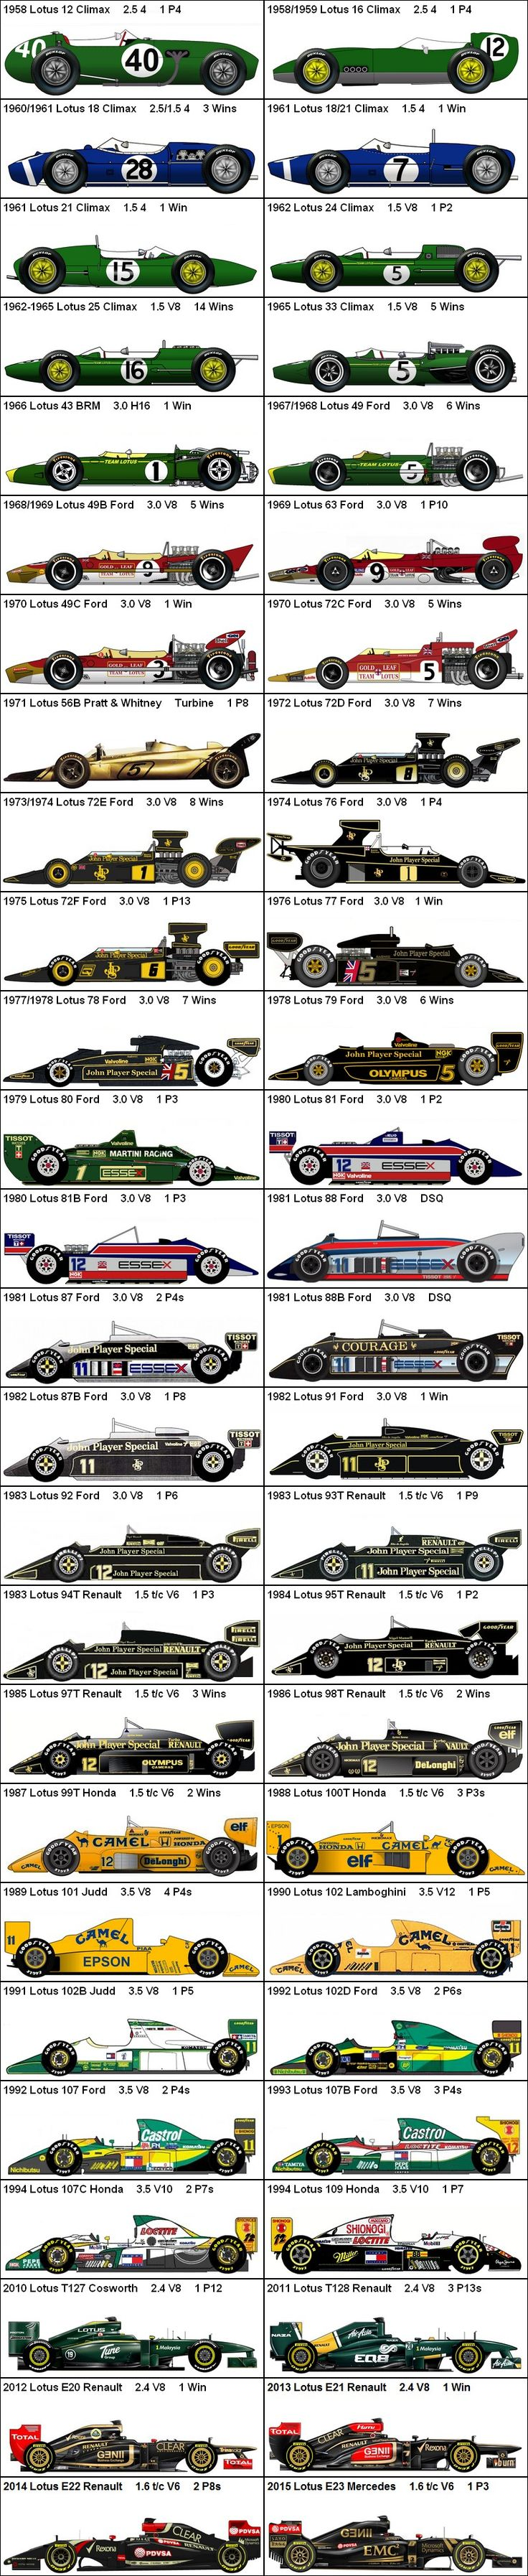 Formula One Grand Prix Lotus 1958-2015